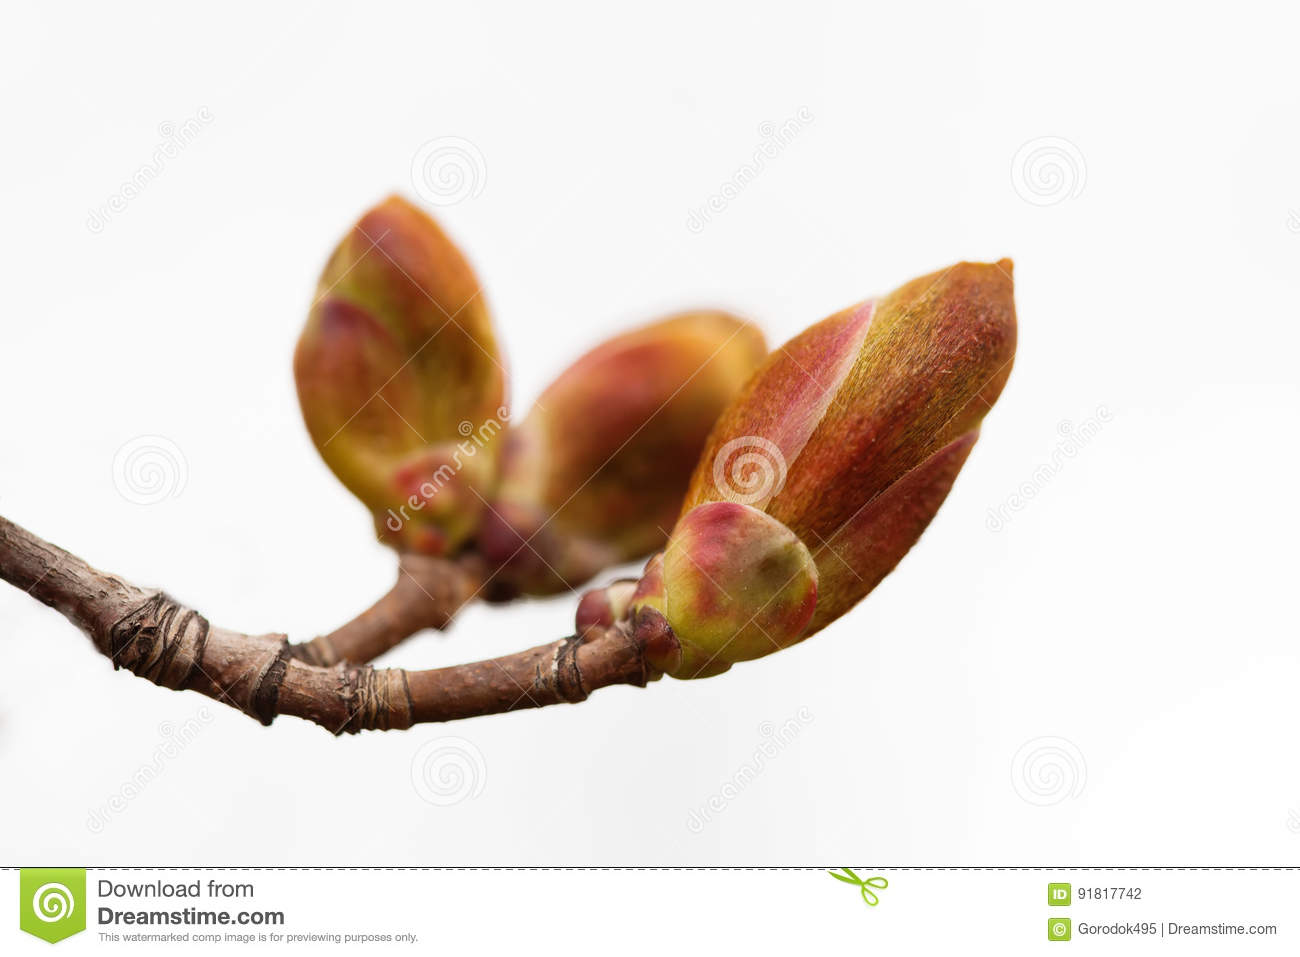 Download Reddish Tree Twig Buds On White Background. Macro View Garden Plant Branch, First Leaf. Beginning New Life Conceptual Stock Photo - Image of landscape, macro: 91817742